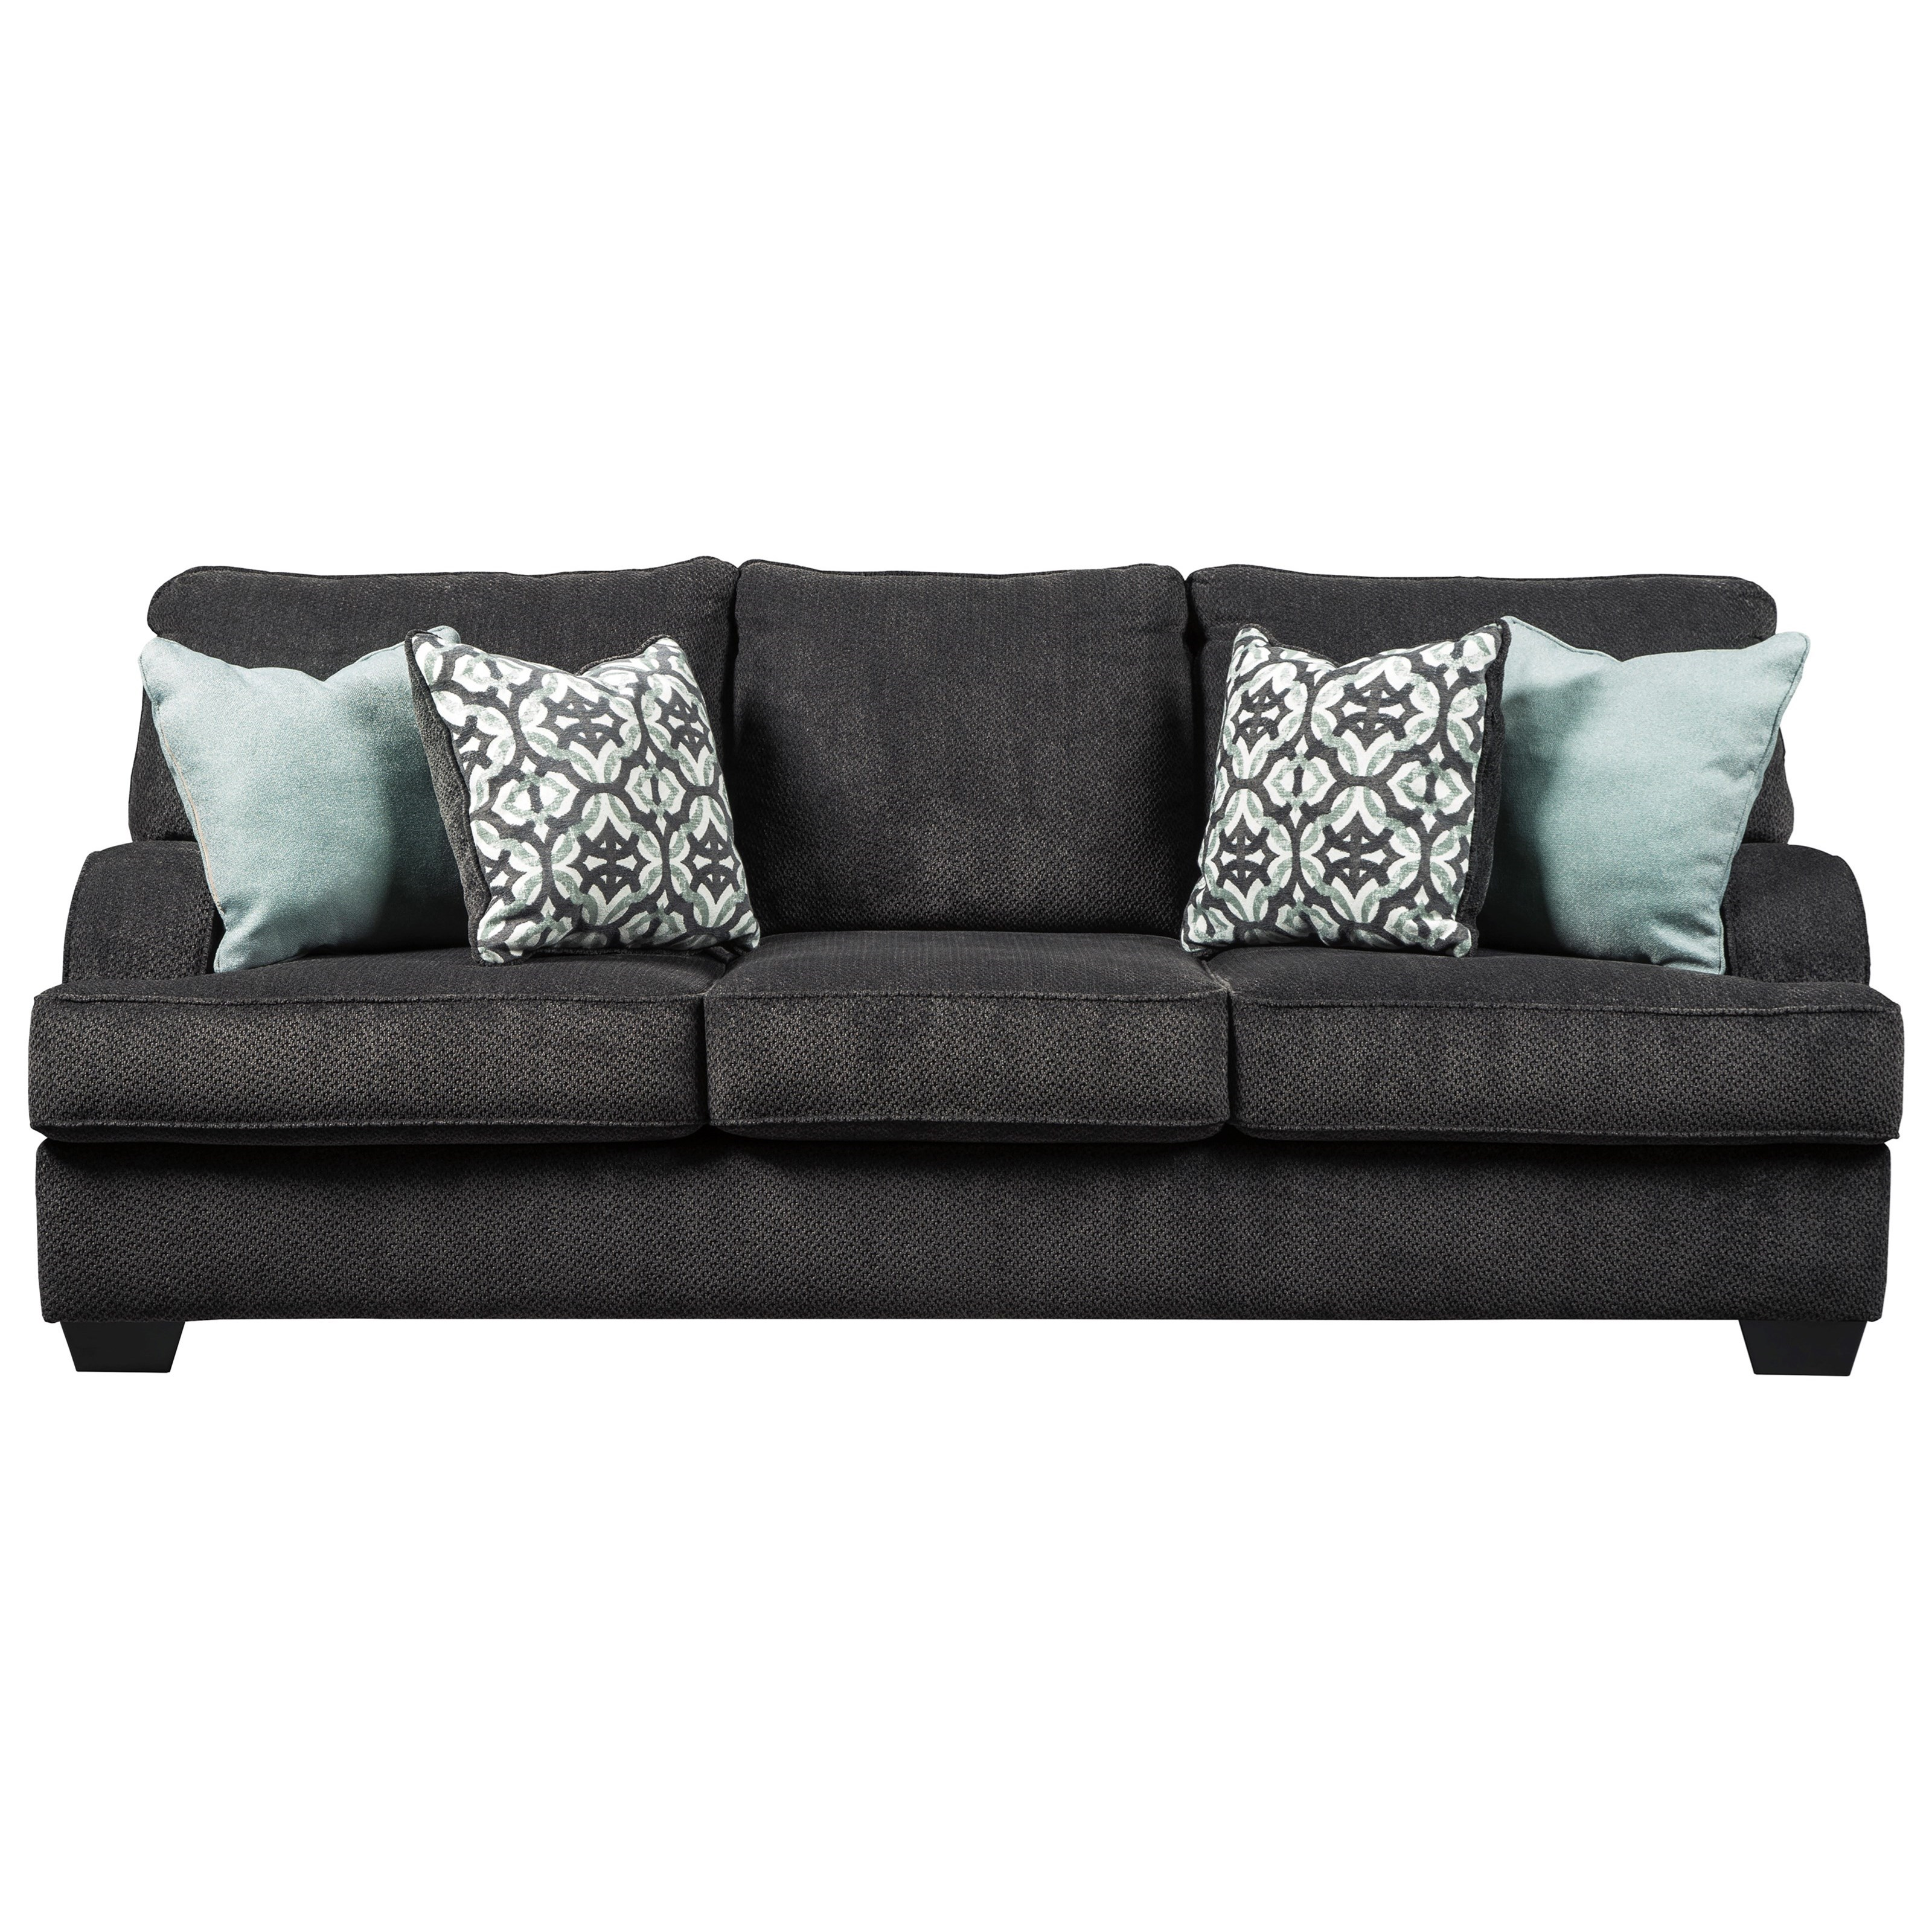 Charenton Sofa by Benchcraft at Standard Furniture